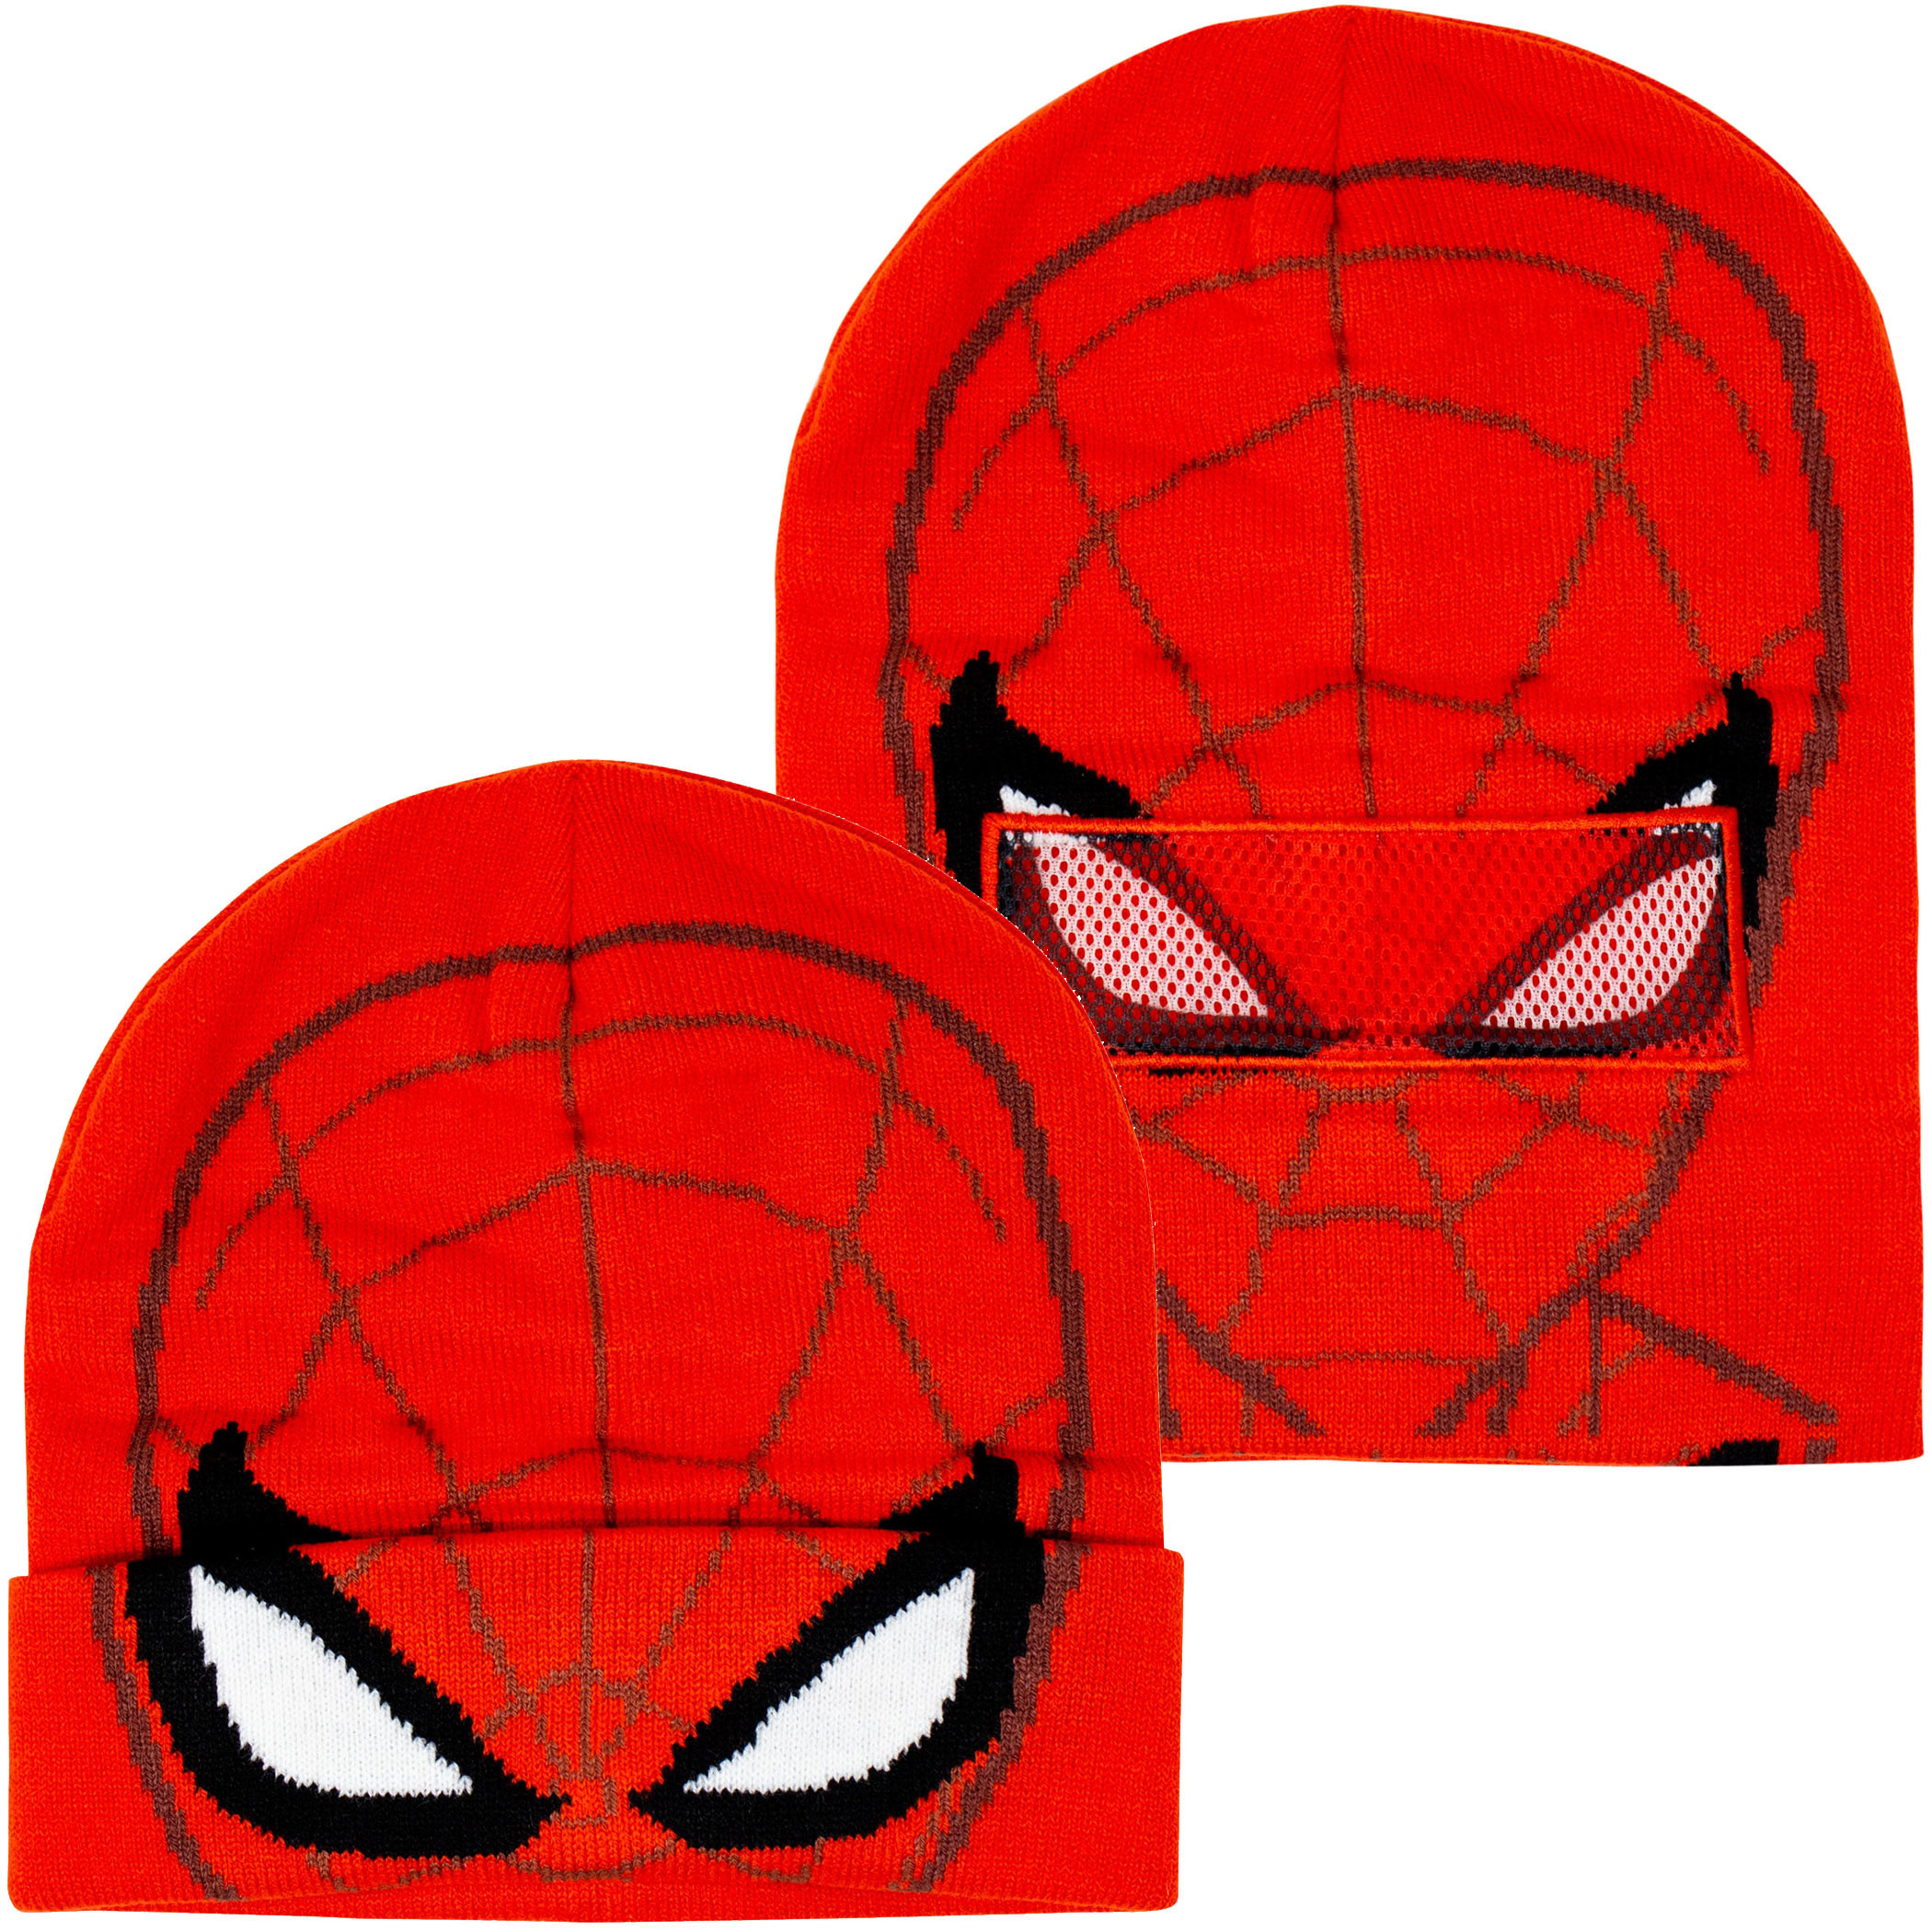 Spider-Man Flip-Down Costume Mask Beanie